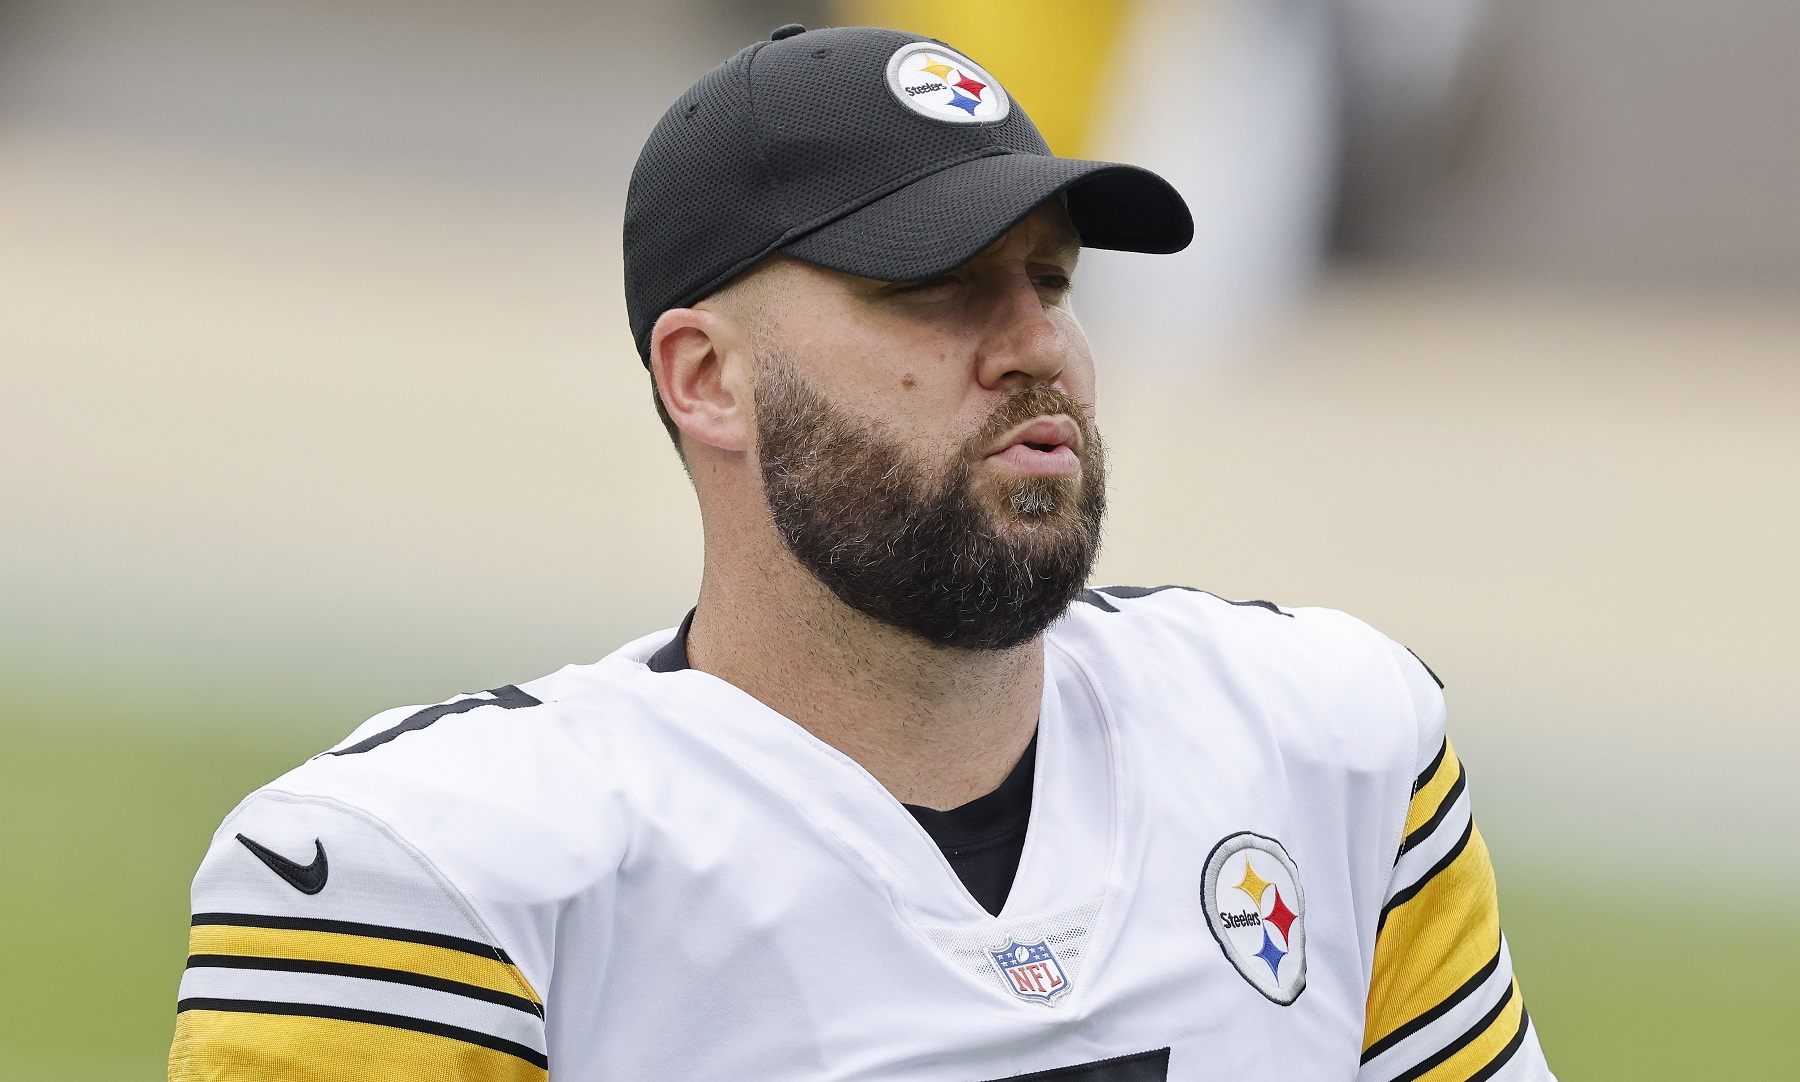 Pittsburgh Steelers QB Ben Roethlisberger's Surprising Reason for Completing His College Degree